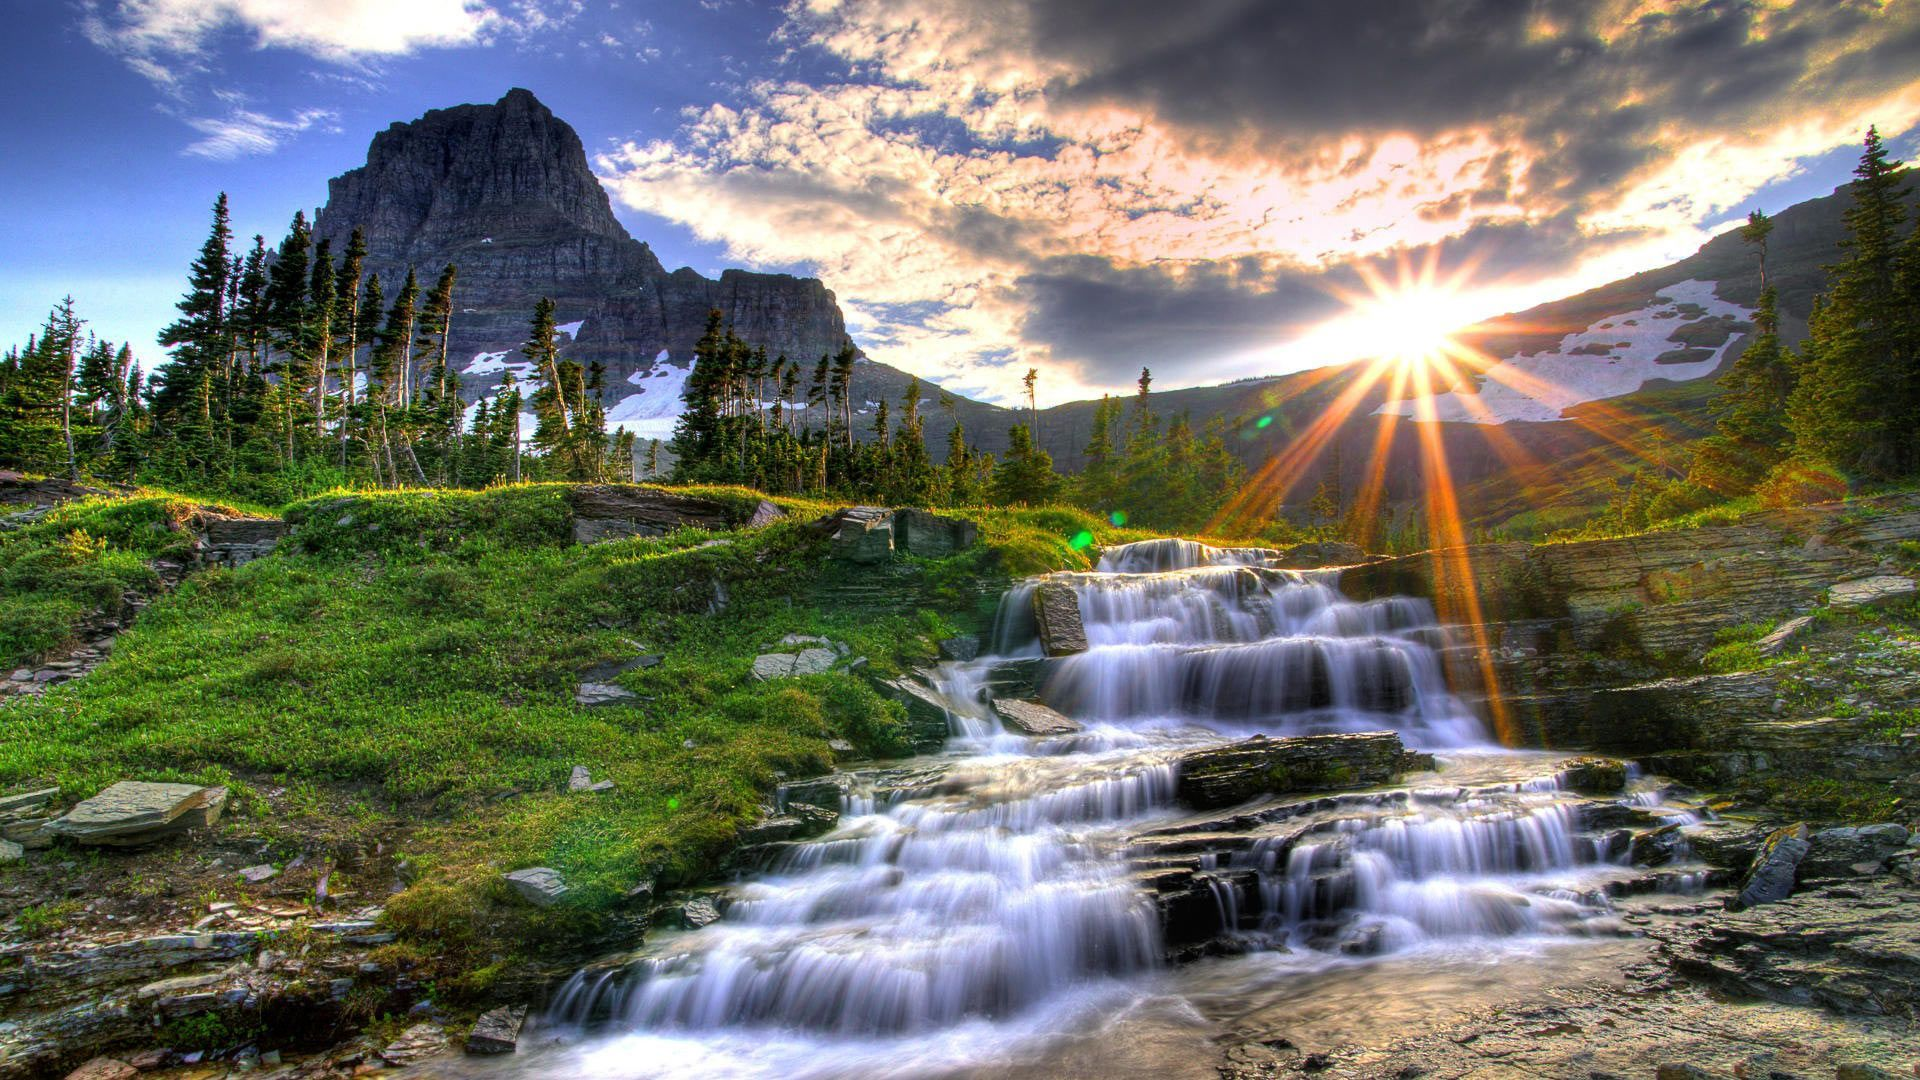 Logan pass glacier national park montana usa i am a huge fan of national parks and america the creator of them has the best